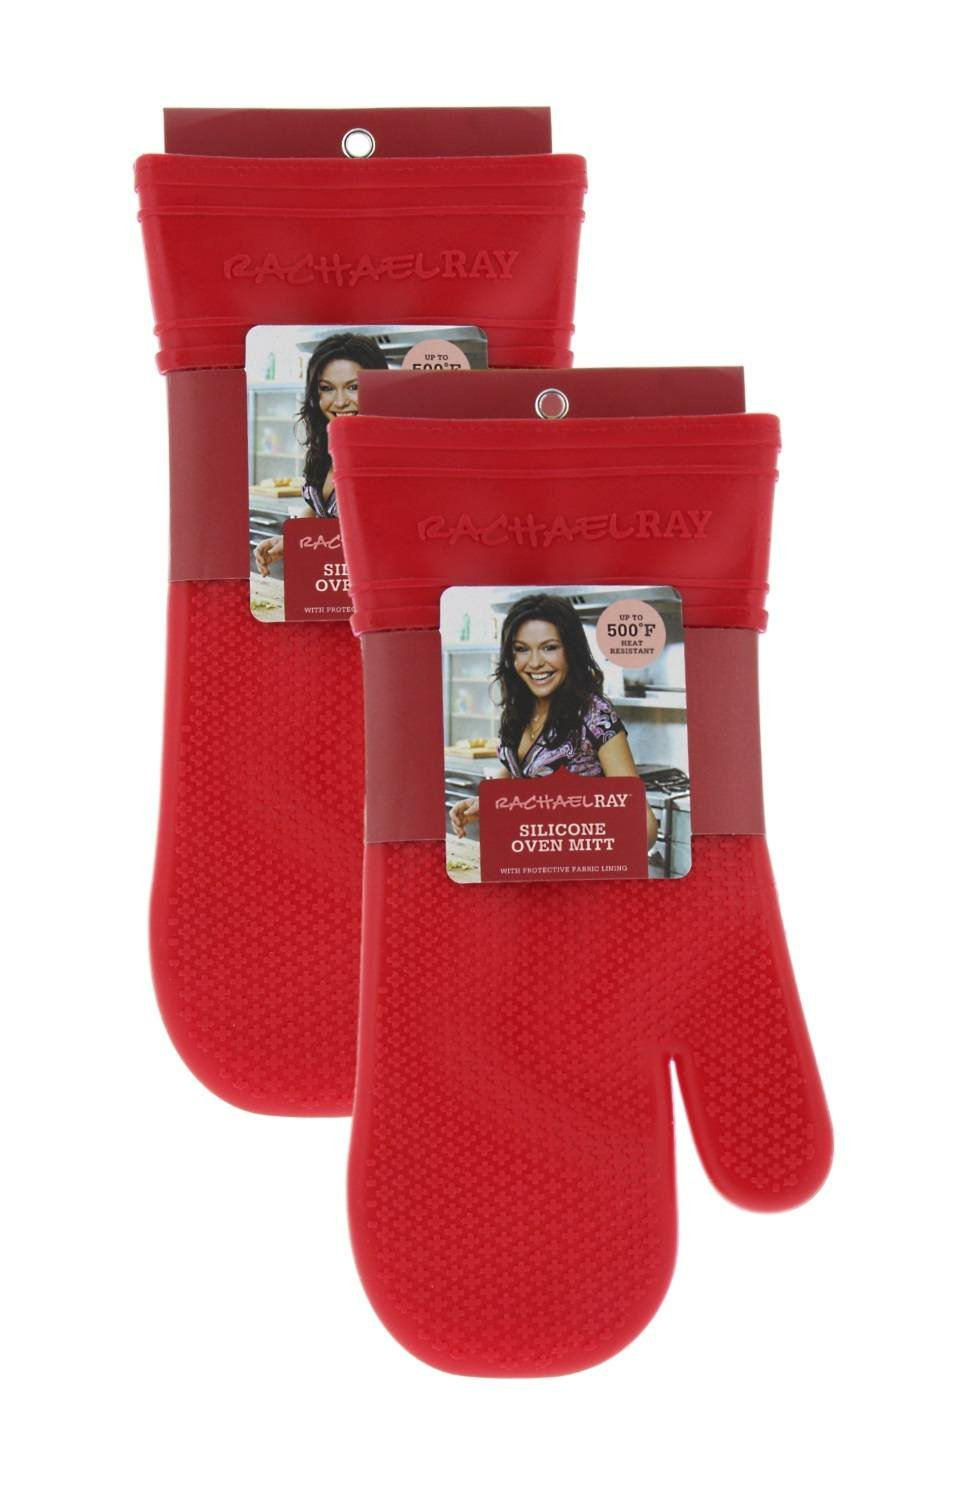 """Rachael Ray Gourmet Silicone Kitchen Oven Mitt/Glove with Quilted Cotton Liner Insulated Pocket, Heat Resistant up to 500 Degrees, Made with Non-Slip, Textured Design, 14"""" long, Cherry Red 2pk"""